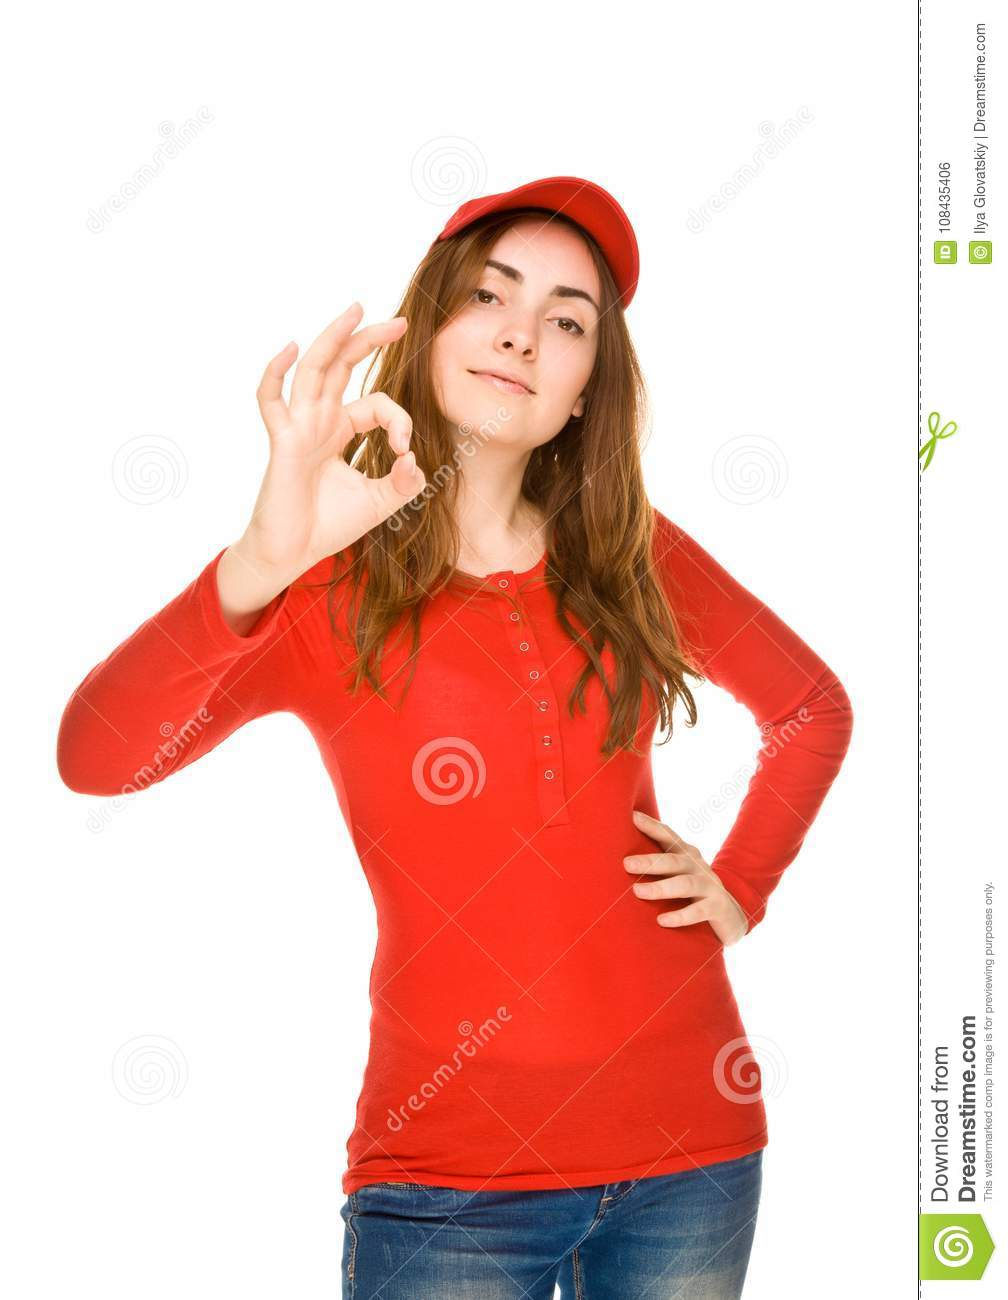 Business Woman Giving The OK Sign Royalty Free Stock Image